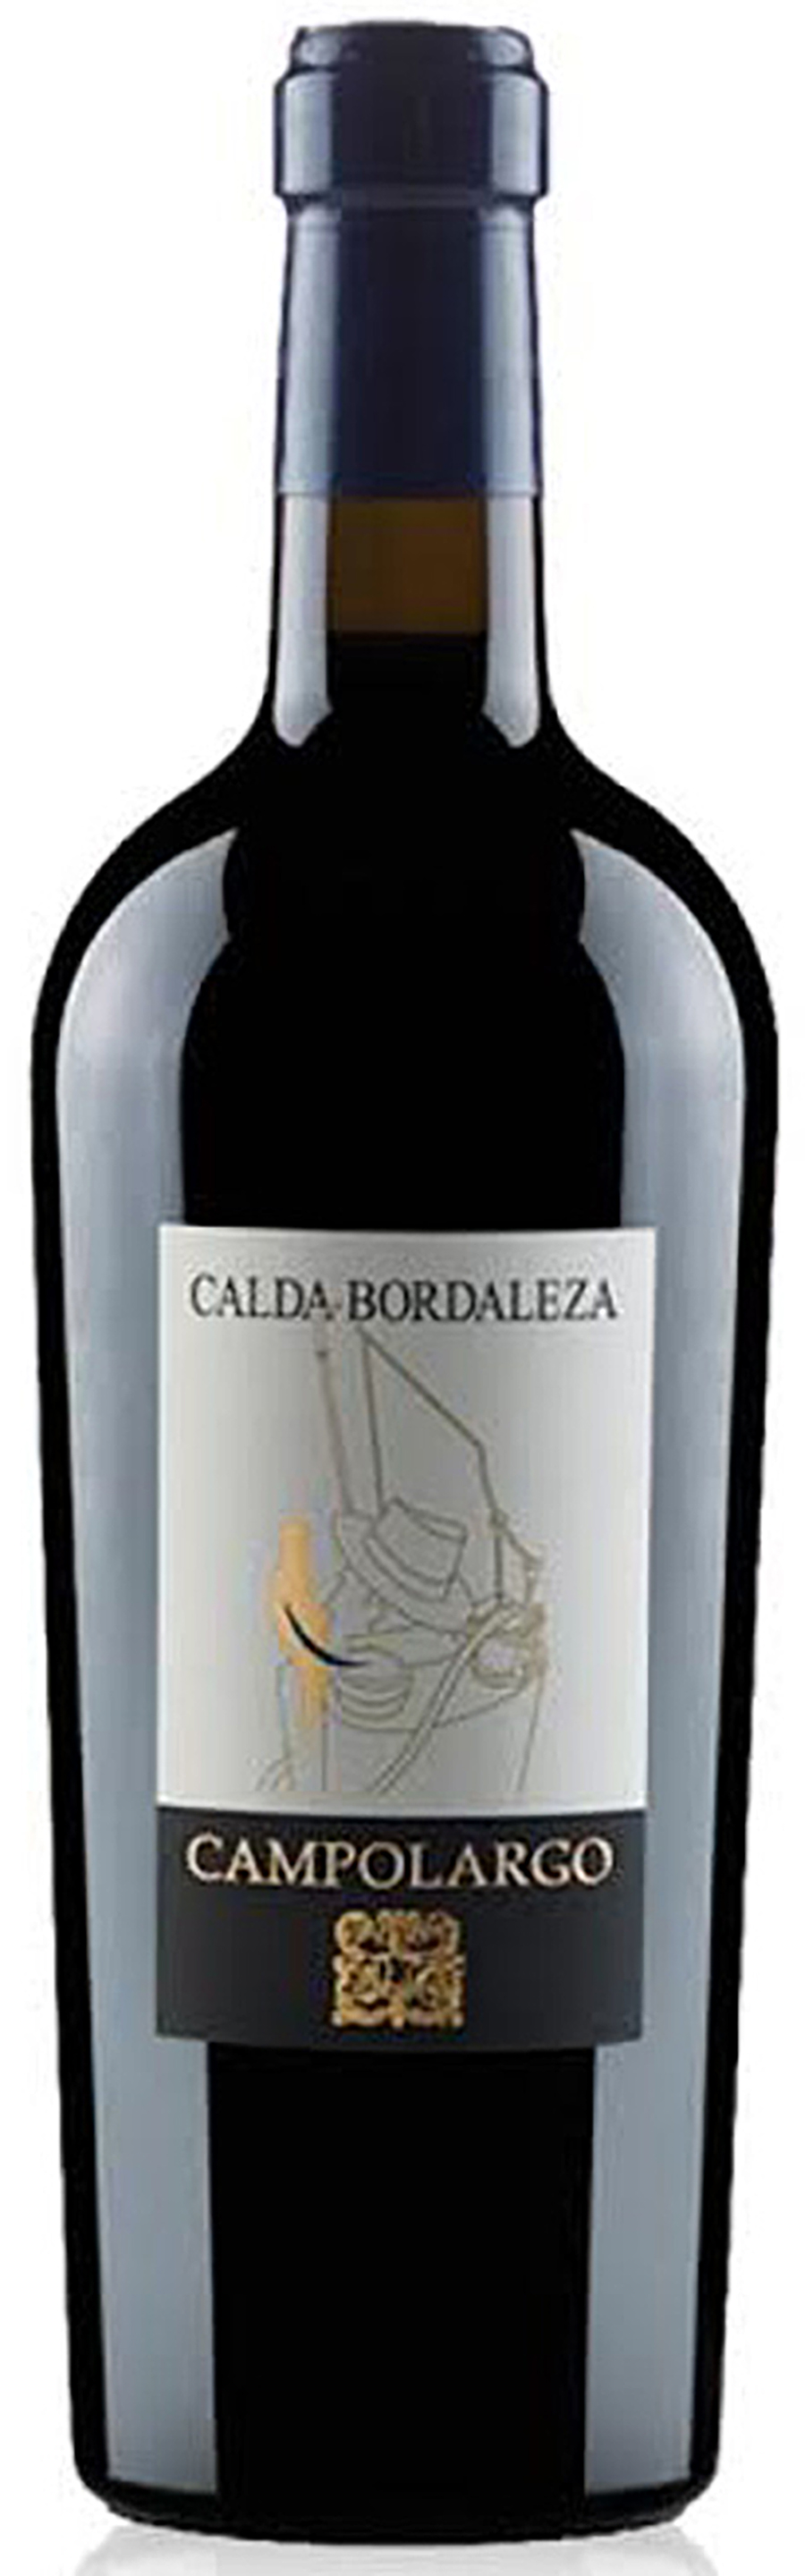 Calda Bordaleza